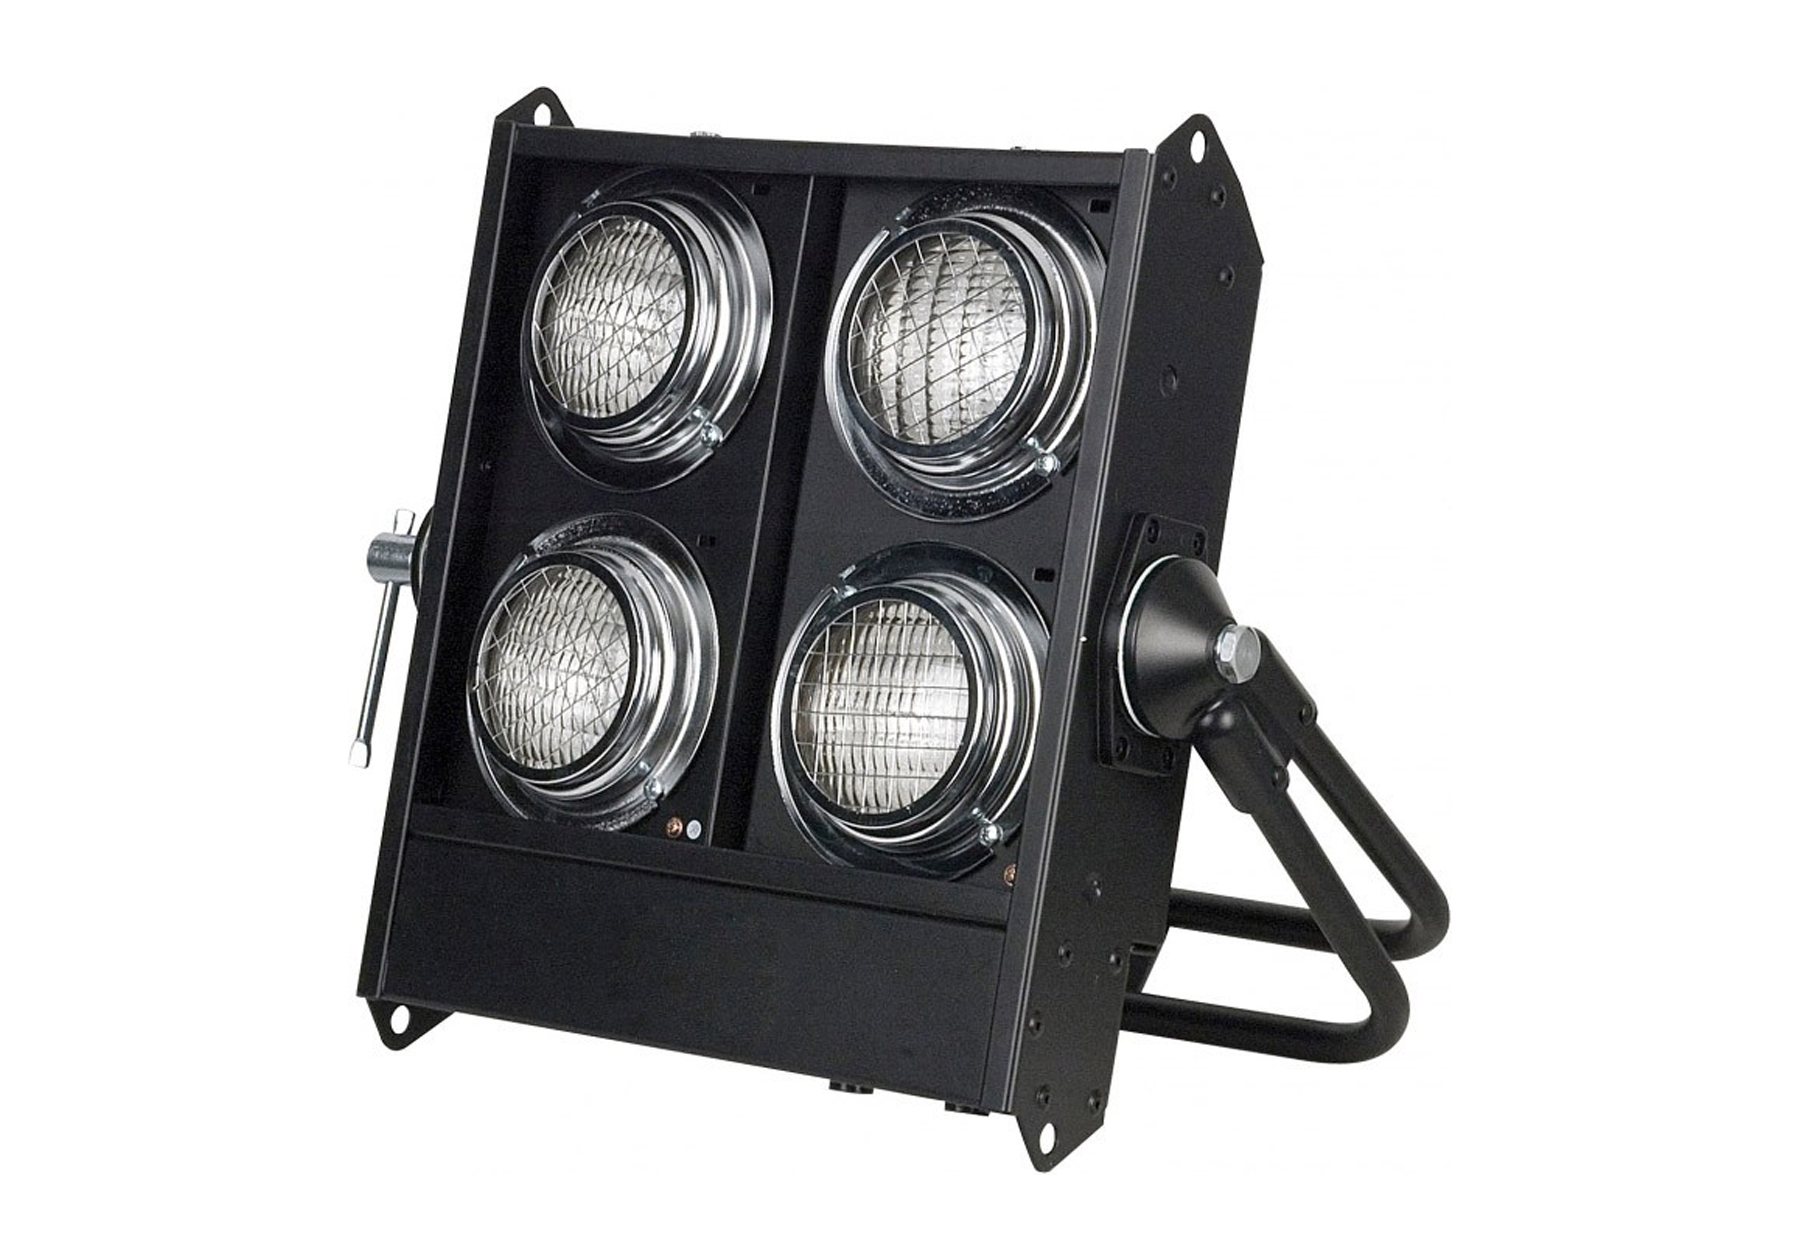 Hire stage blinders & strobe lighting Cardiff, Swansea, Newport, Carmarthenshire, Pembrokeshire & South West Wales.